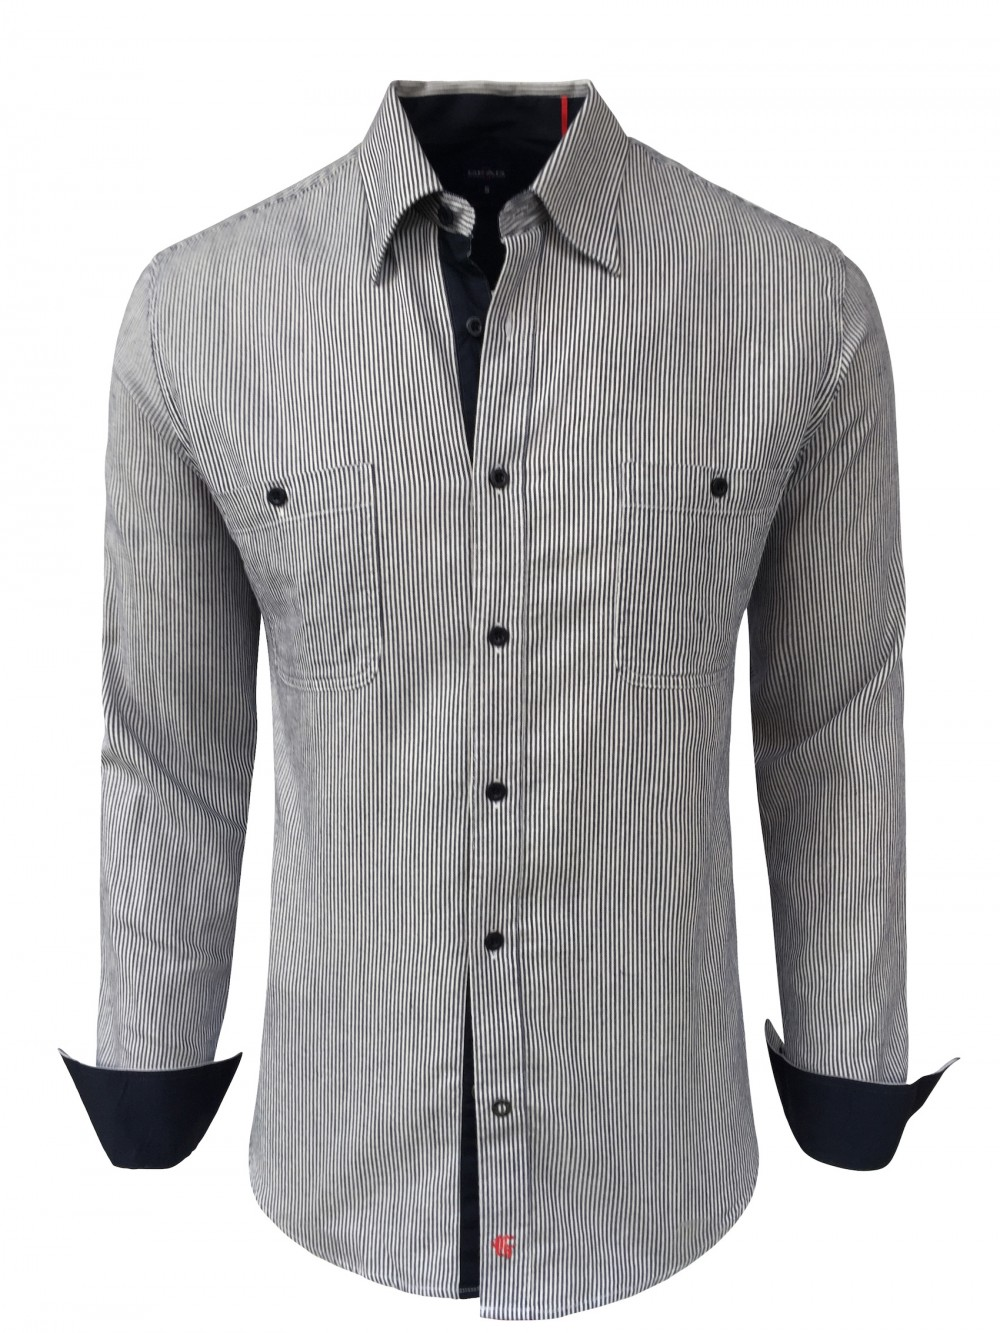 Mens slim fit shirt BARRICK SHM1286